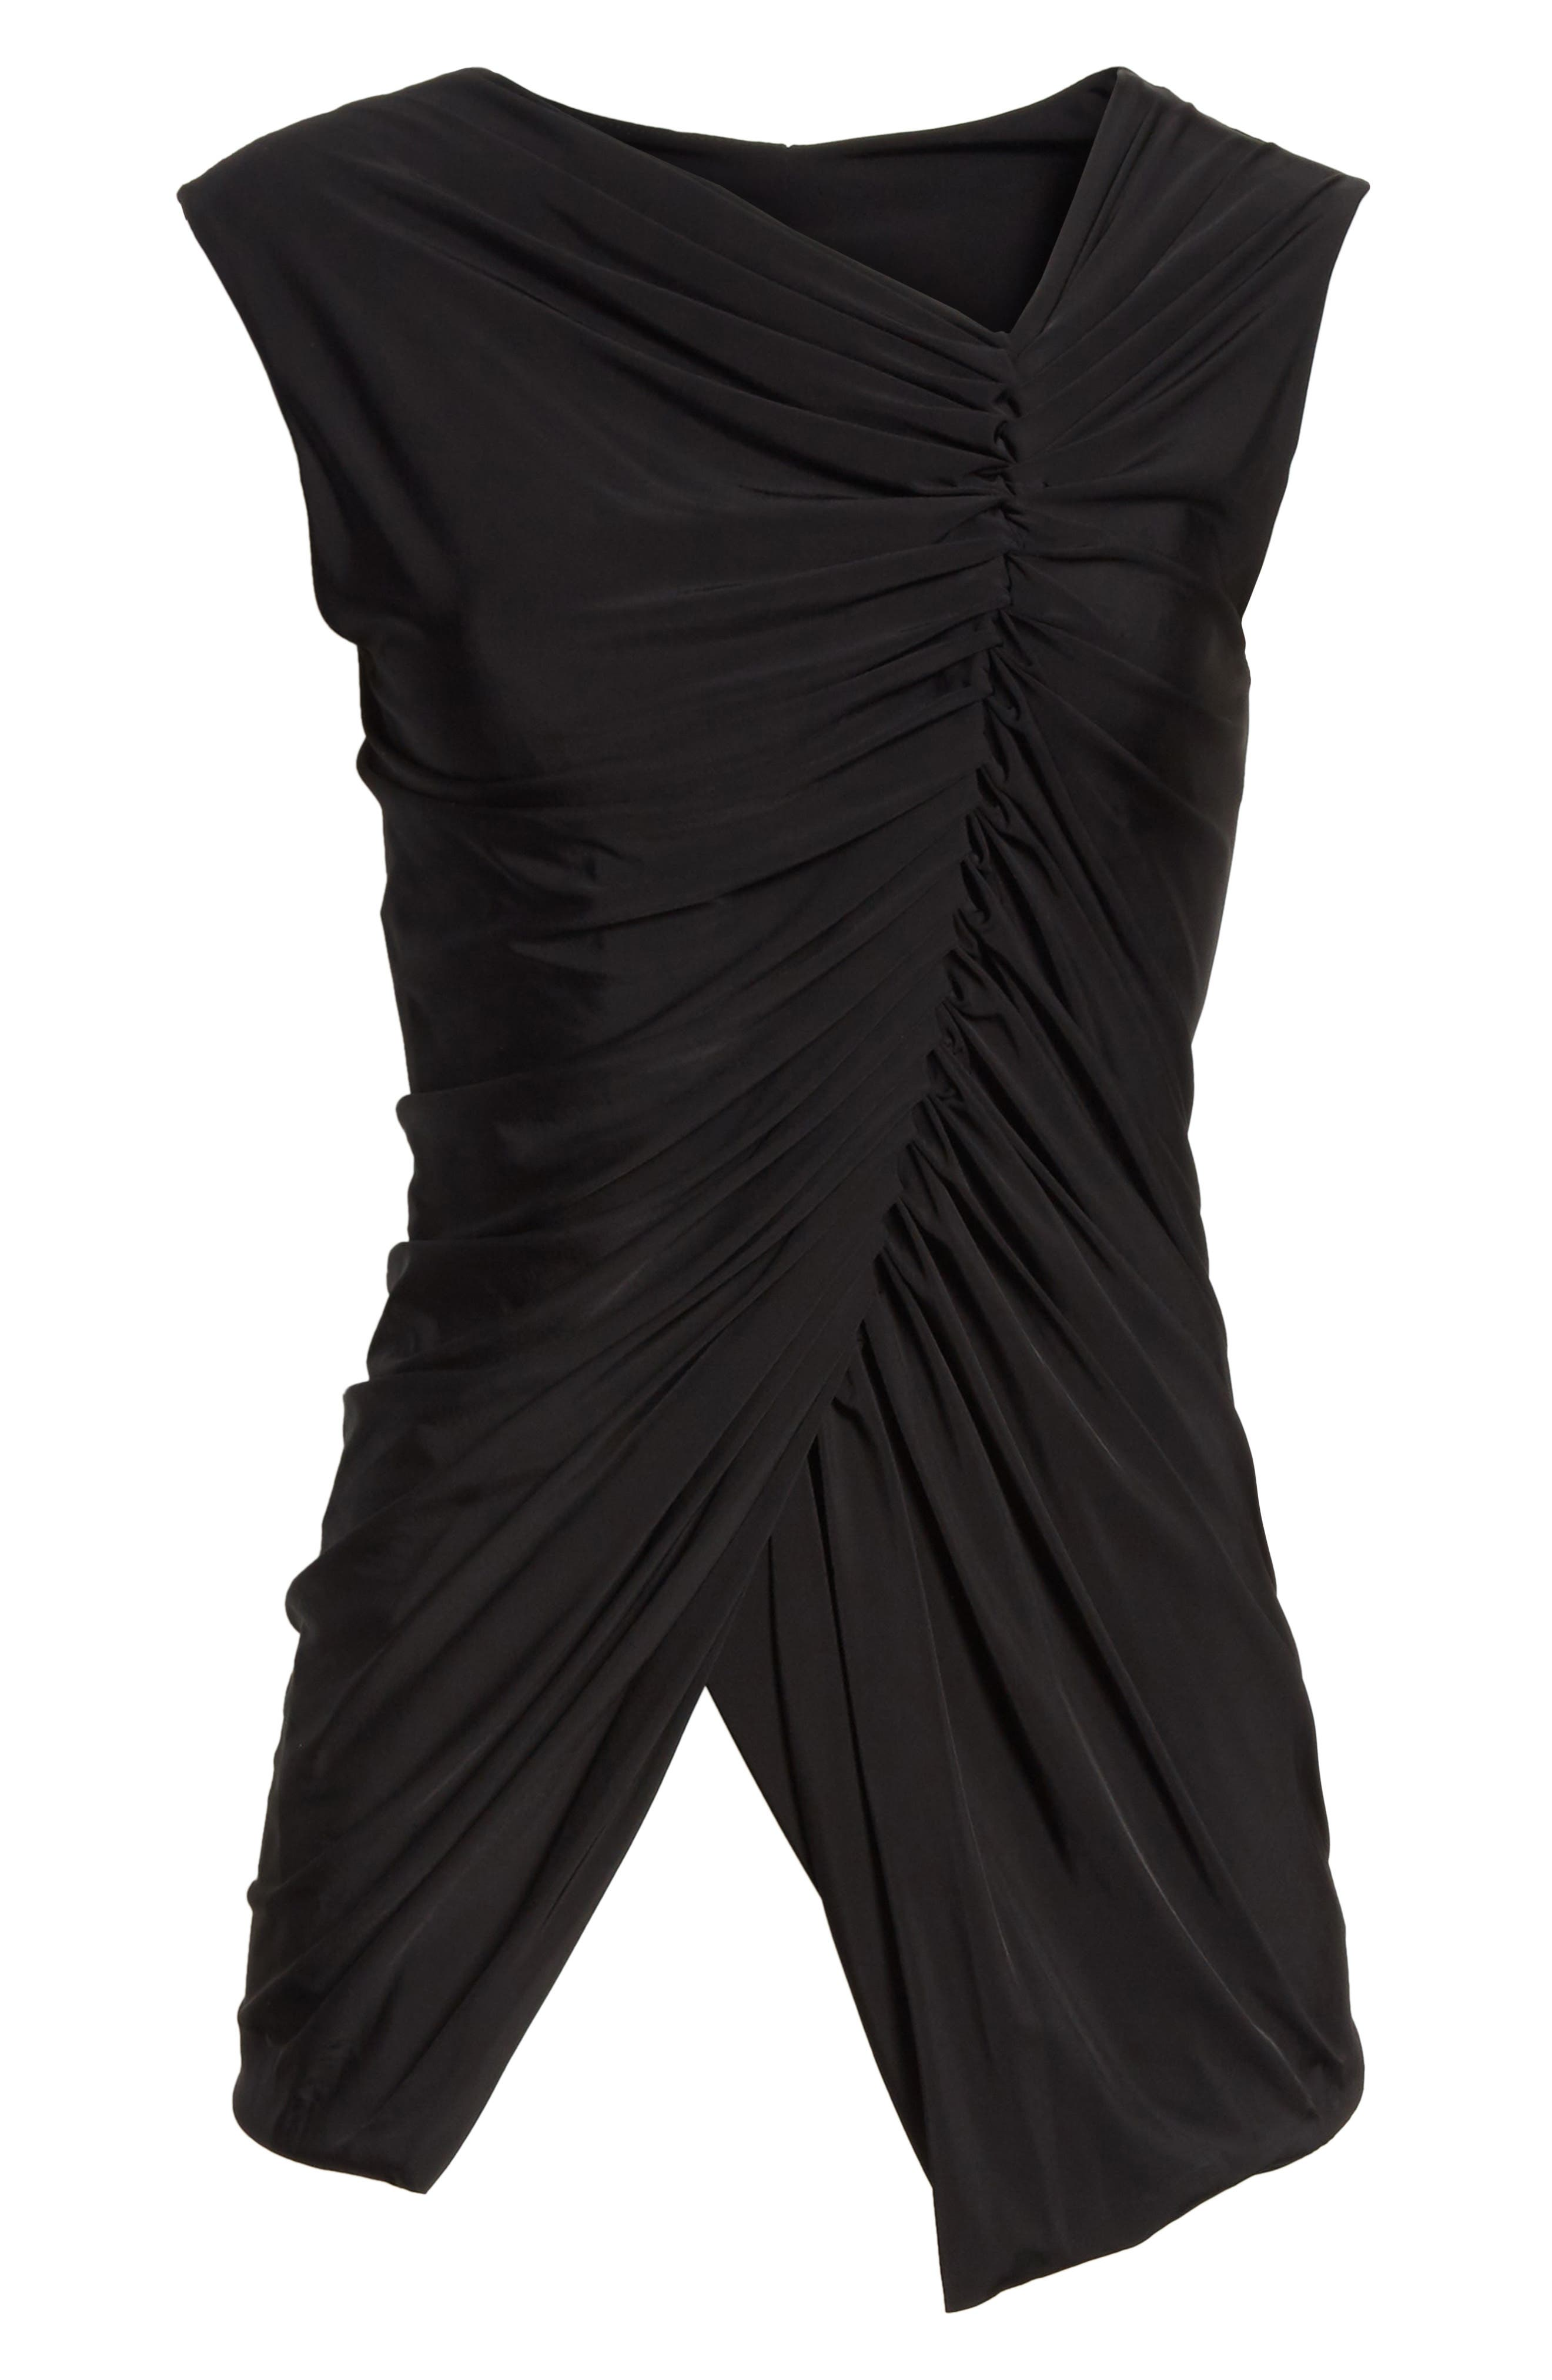 Jason Wu Asymmetrical Ruched Jersey Top,                             Alternate thumbnail 6, color,                             001